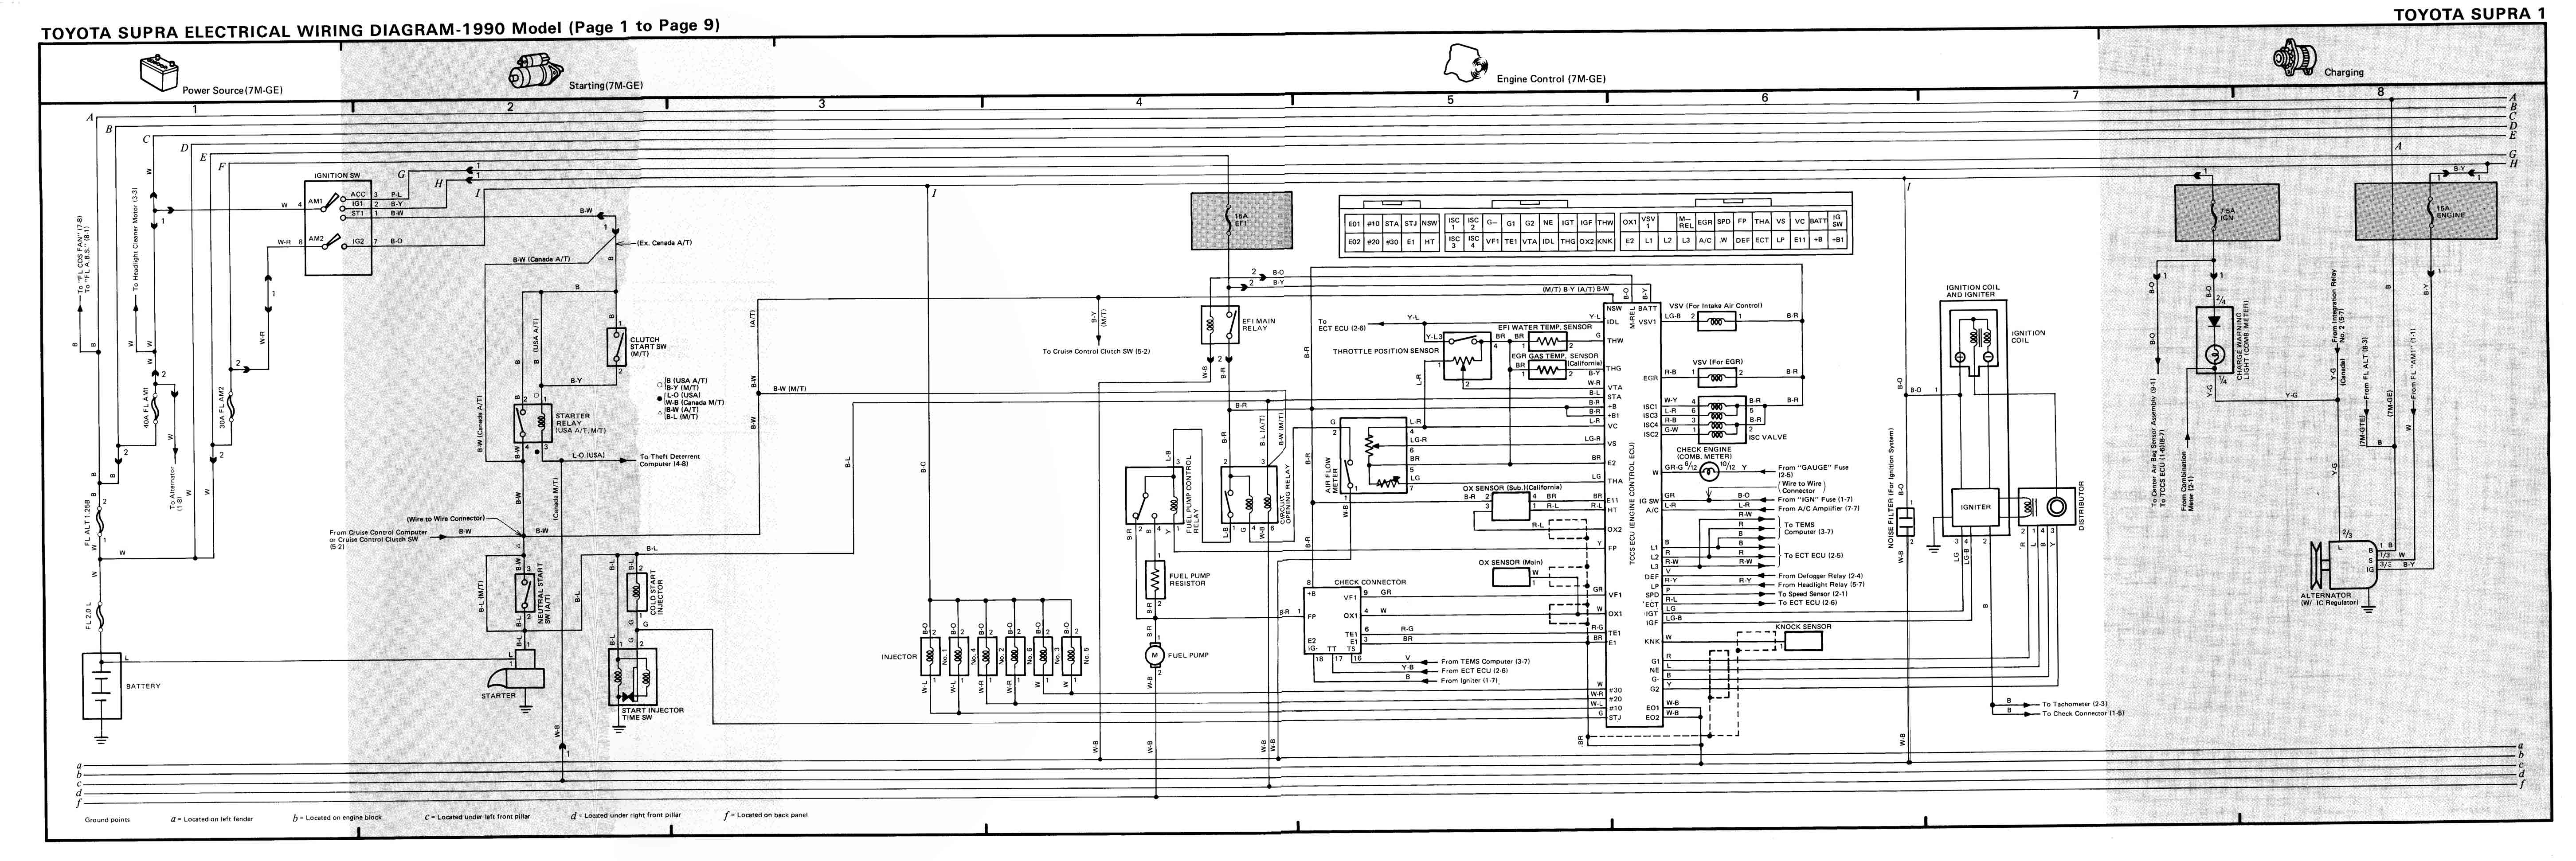 Flyout 1 toyota ecu wiring diagrams wiring diagram simonand 1jz wiring diagram at soozxer.org